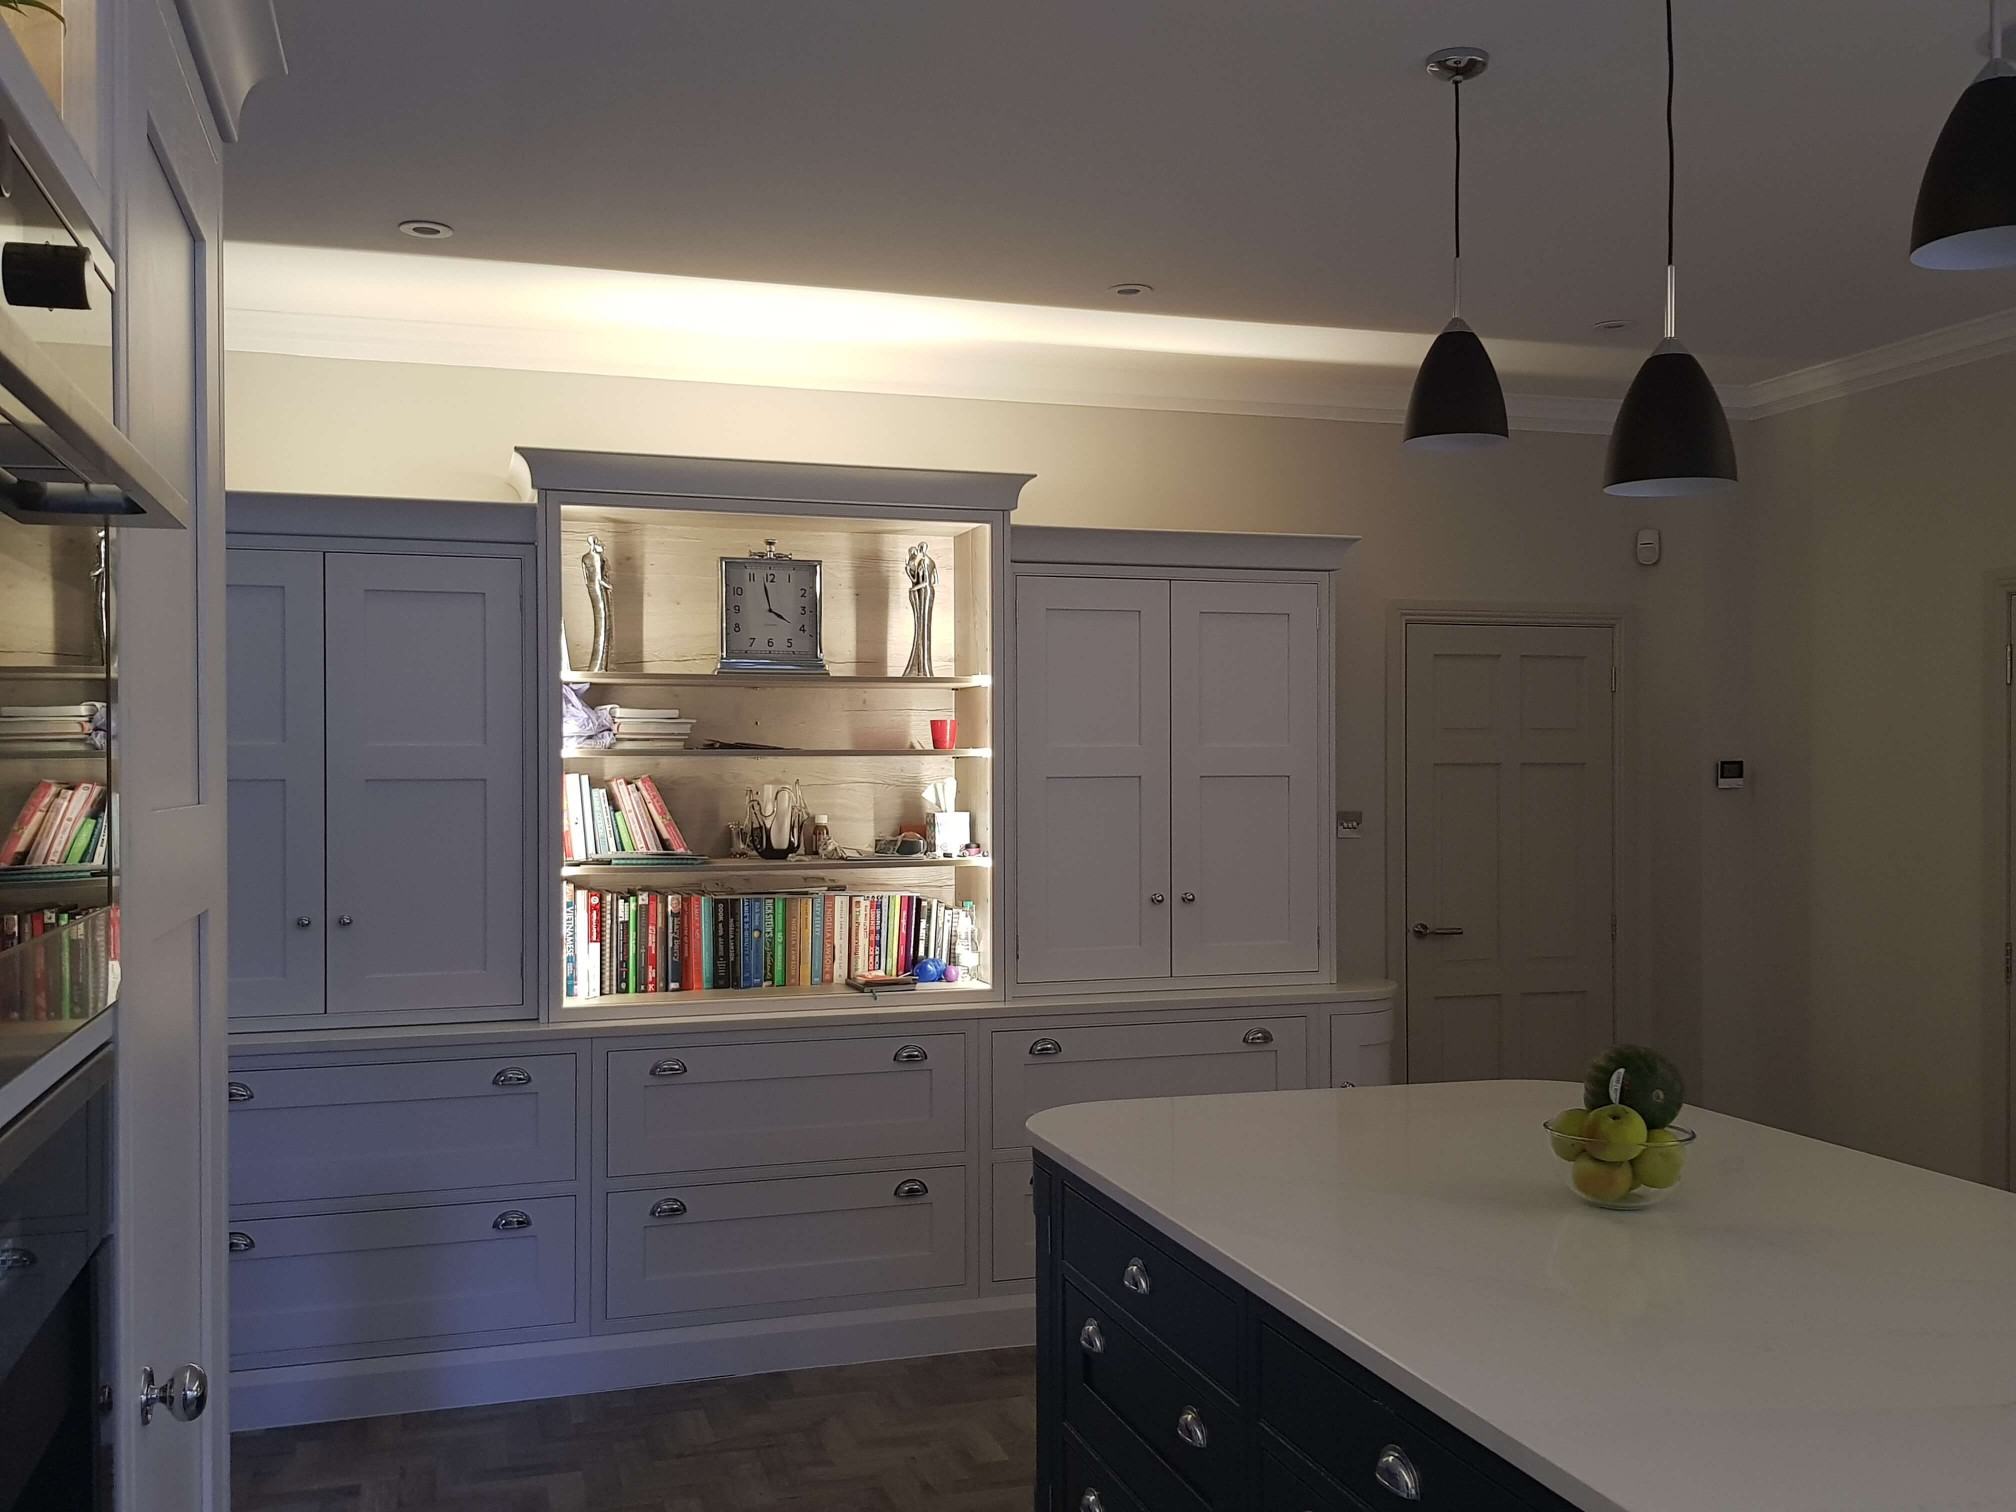 Bespoke Inframe Kitchen - Lighting